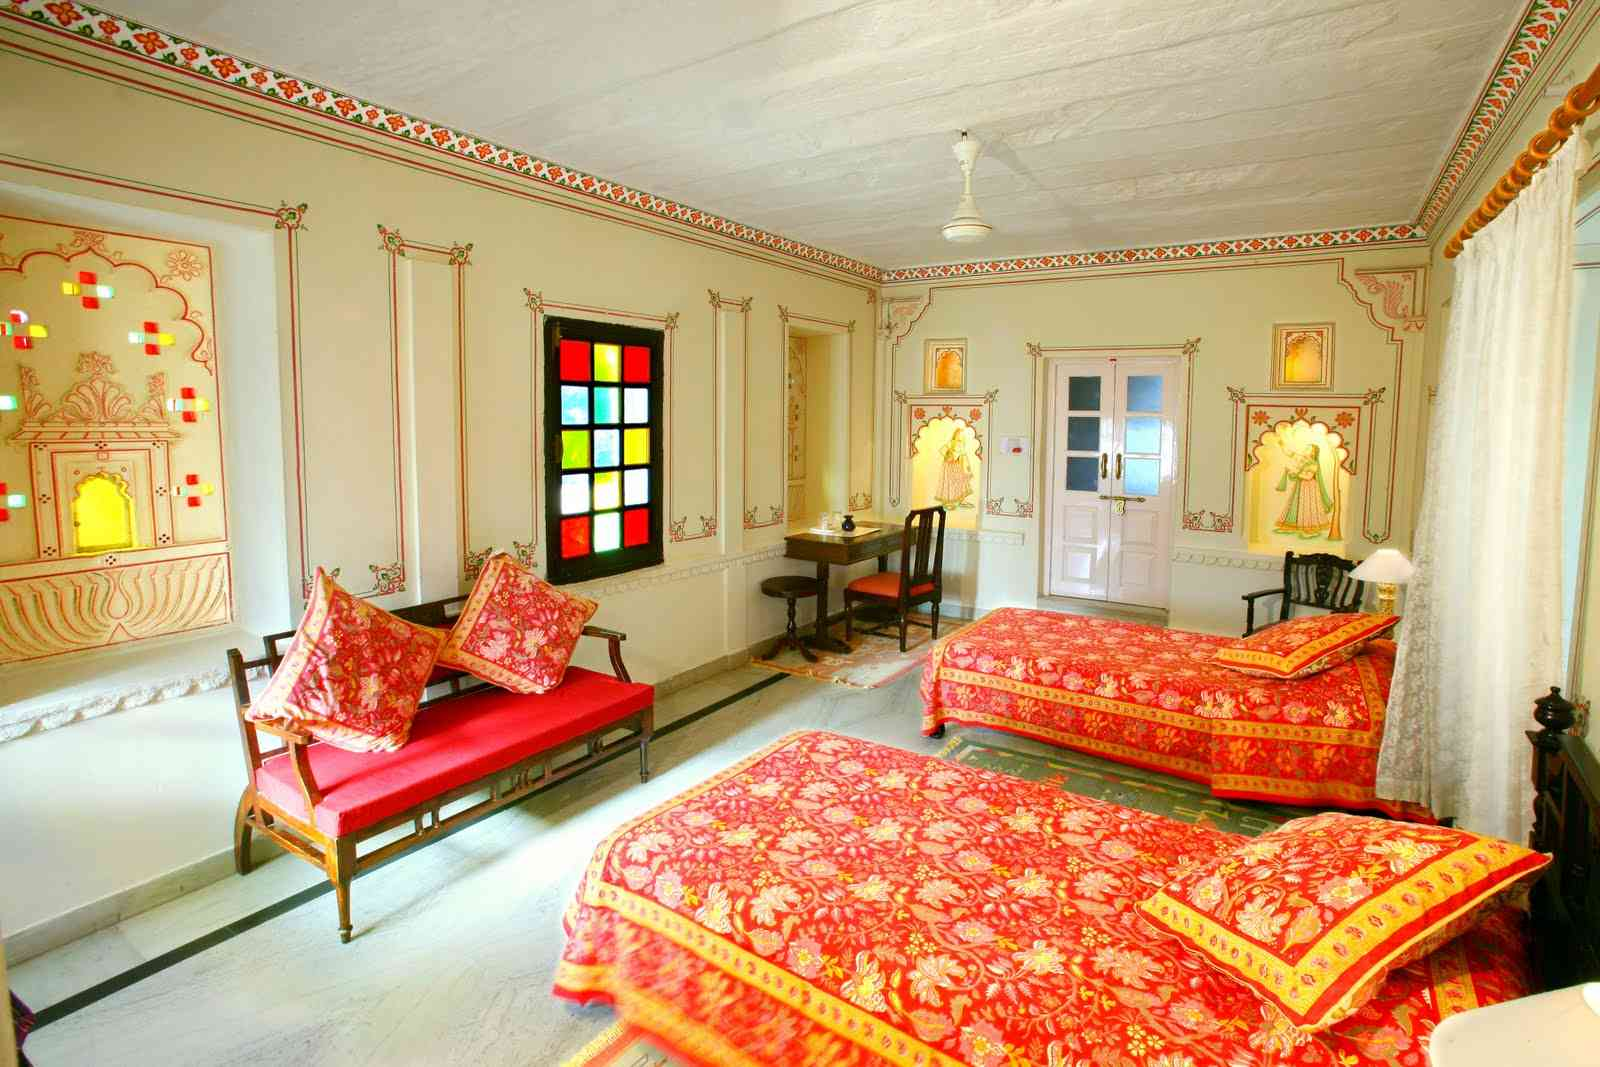 Rajasthani Style Interior Decoration Ideas  Textiles